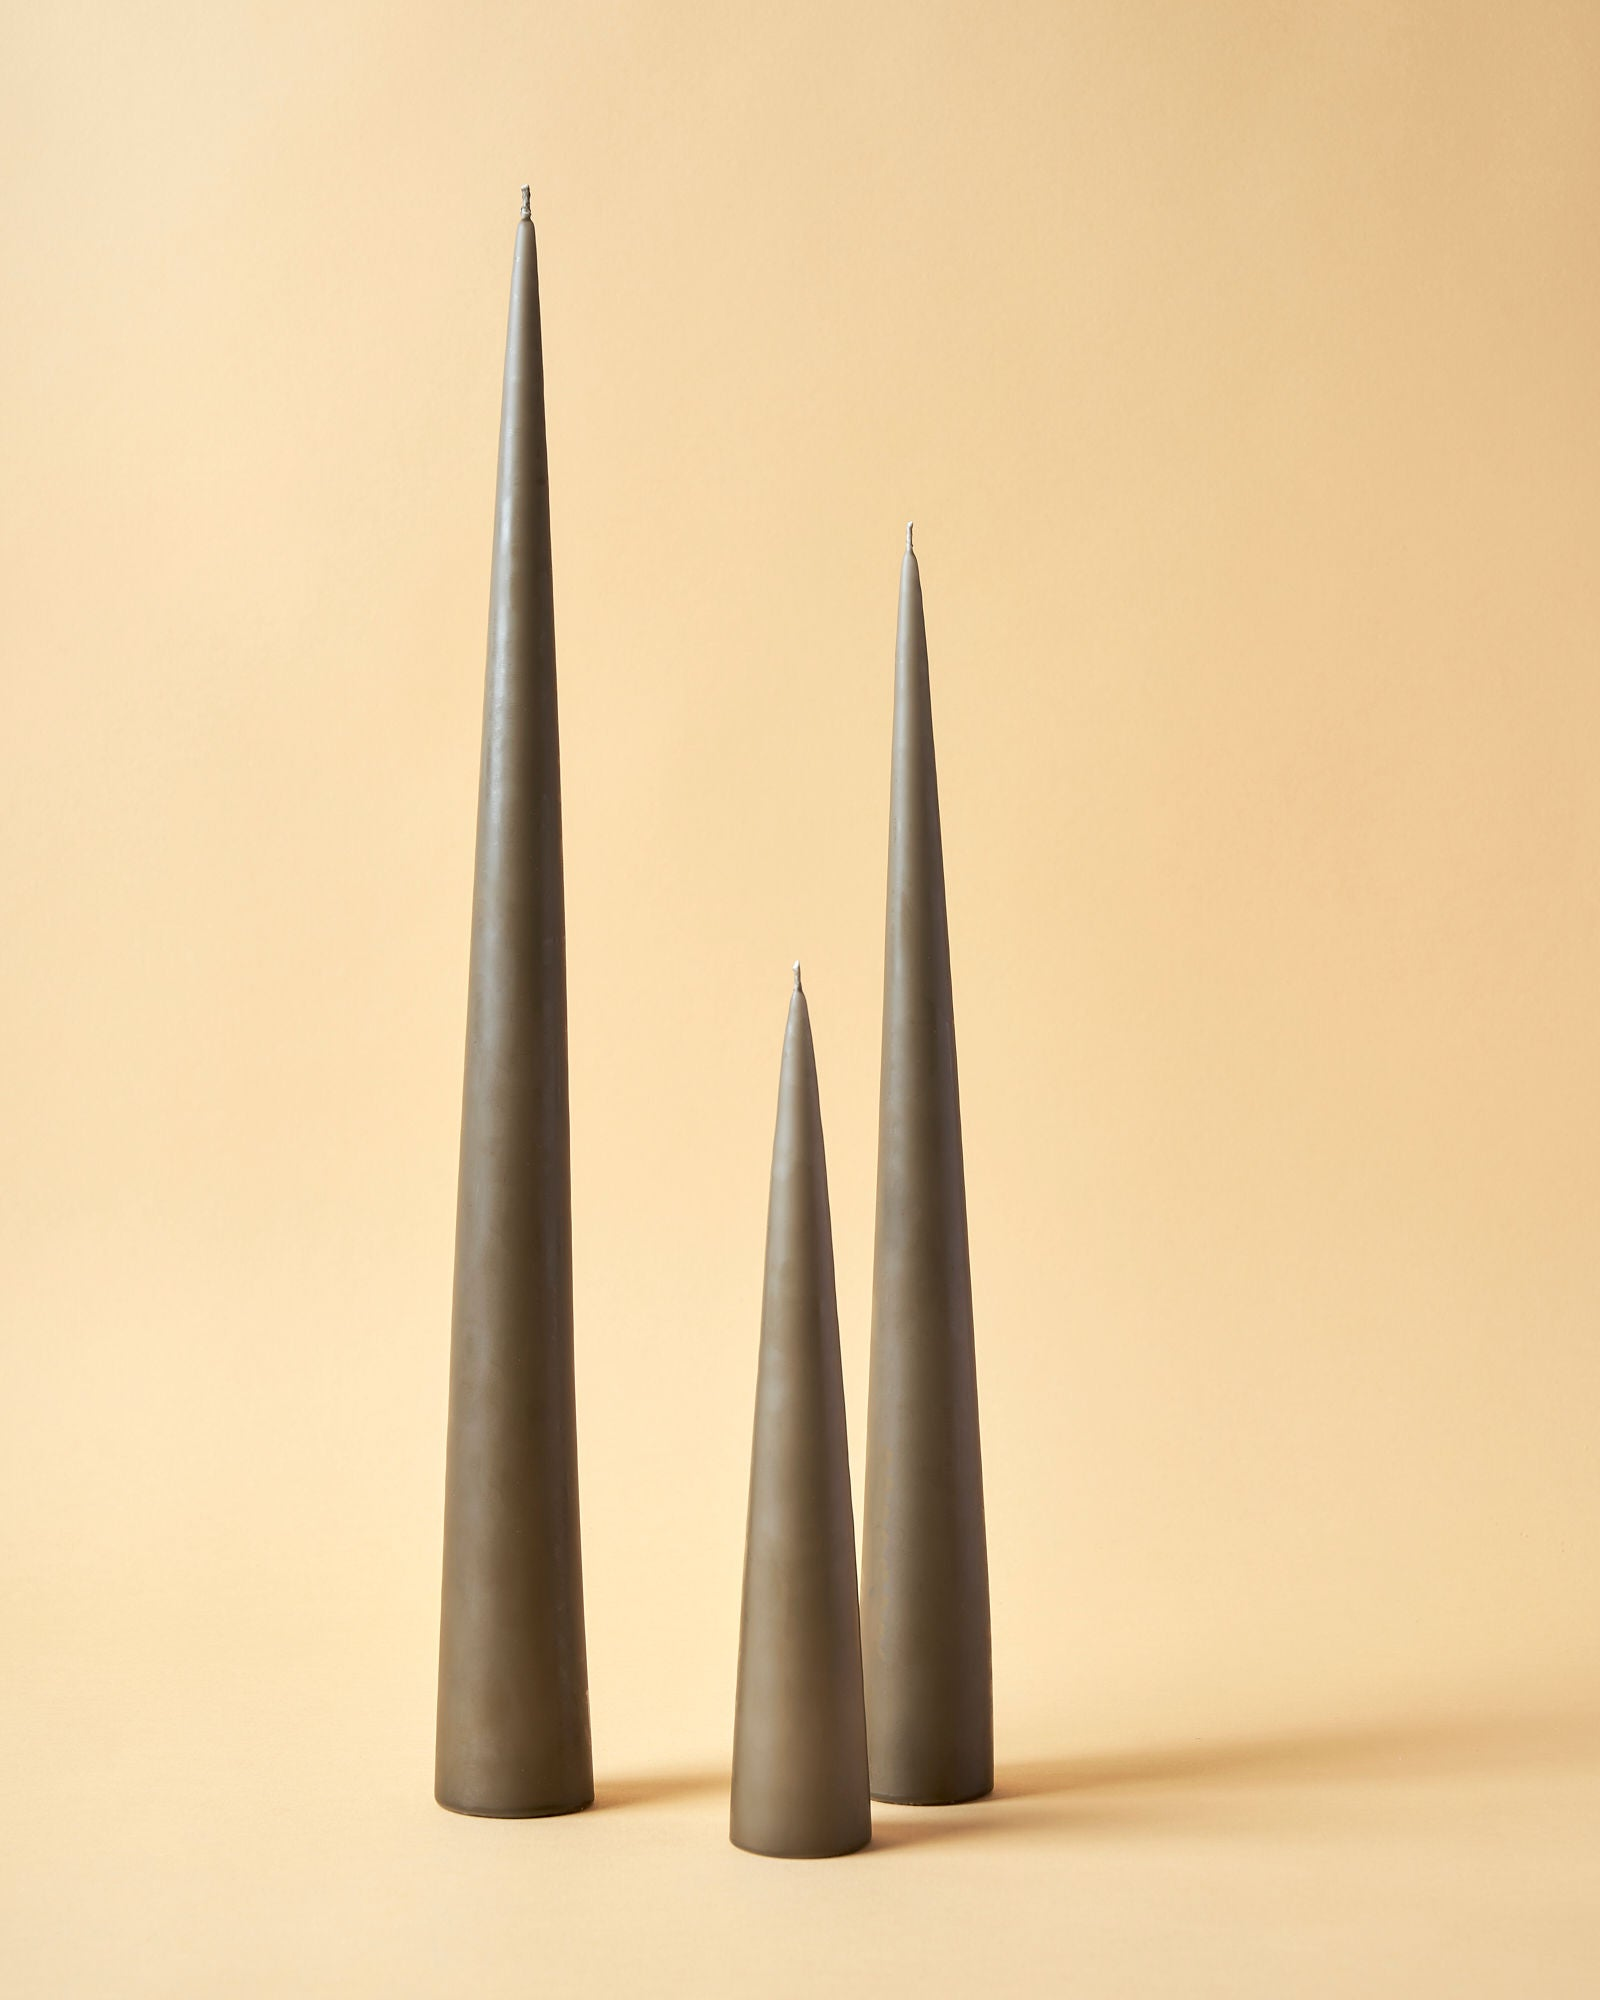 Dusty Brown Matte Cone Candles by Ester & Erik